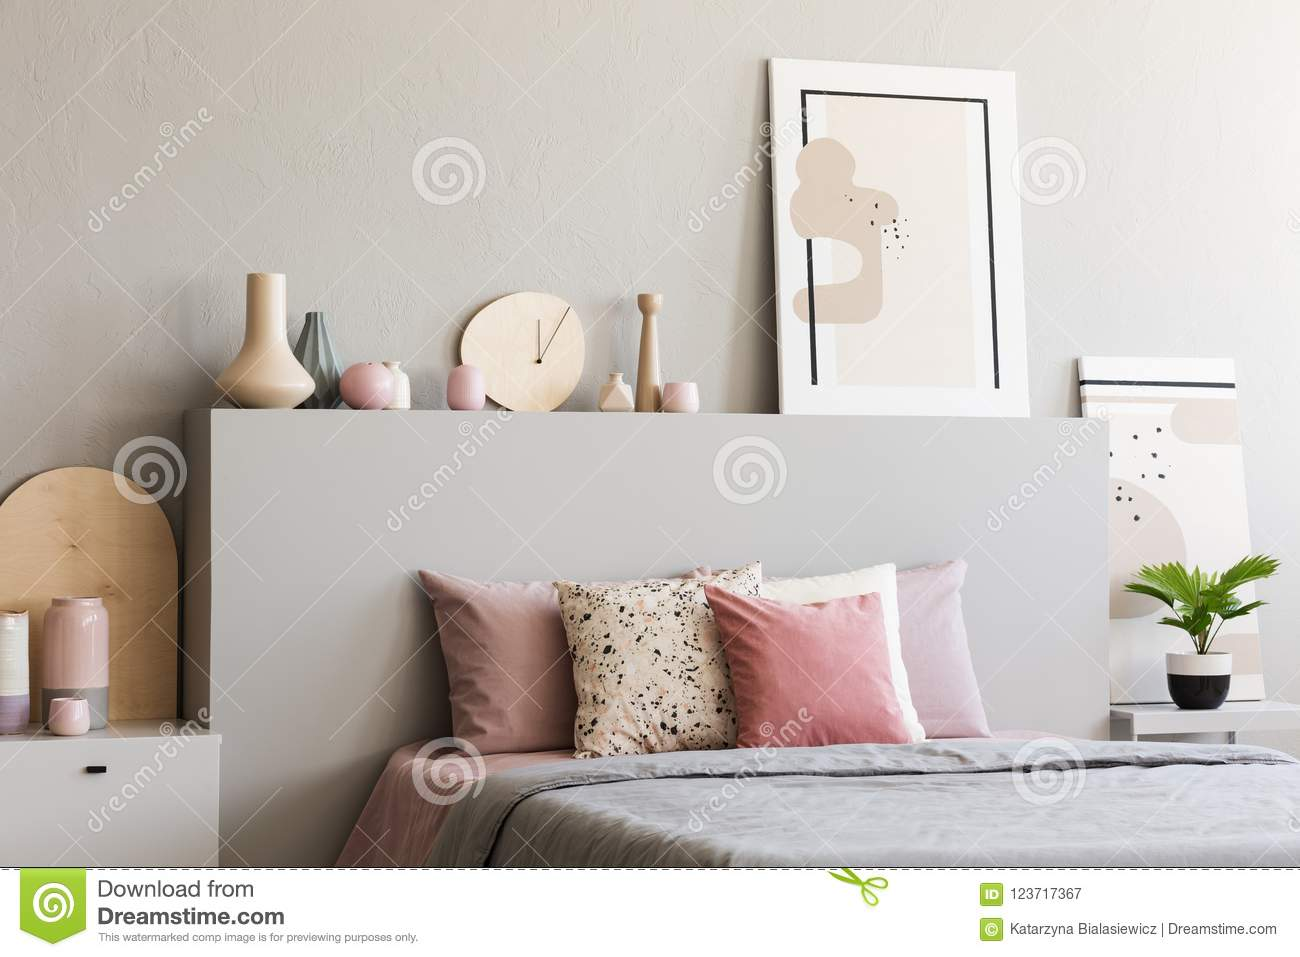 Poster On Headboard Of Bed With Pink Cushions In Grey Bedroom In ...